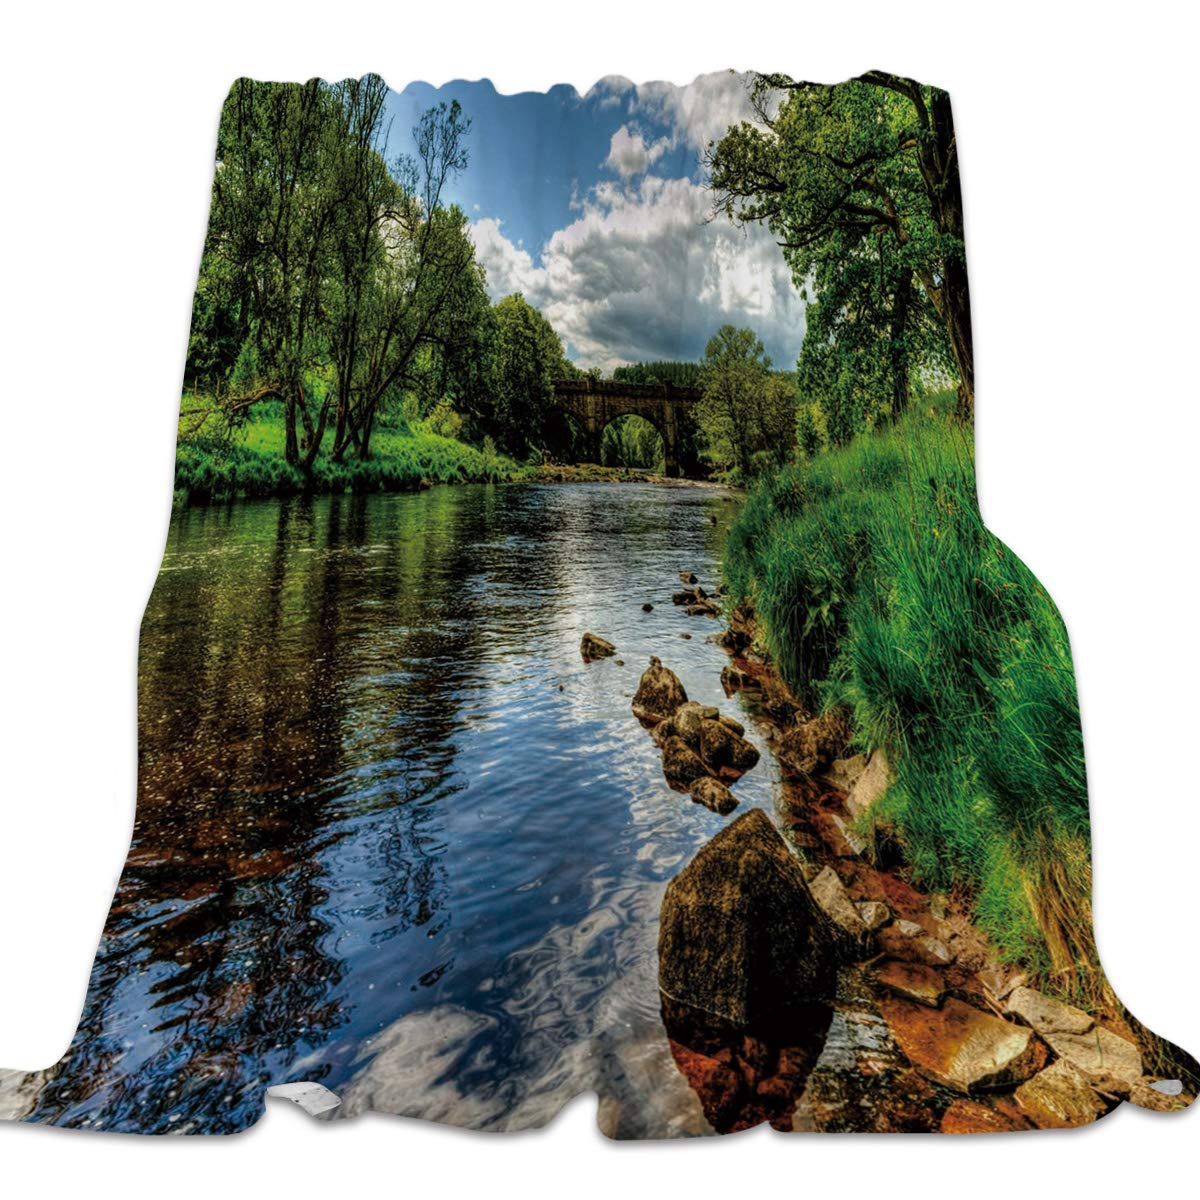 Landscape3yag1002 49x59inch=125x150cm 49x59 Inch Flannel Fleece Bed Blanket Soft ThrowBlankets for Girls Boys,Fashion 3D Dolphin Fish Animal Pattern,Lightweight Warm Kids Blankets for Bedroom Living Room Sofa Couch Home Decor